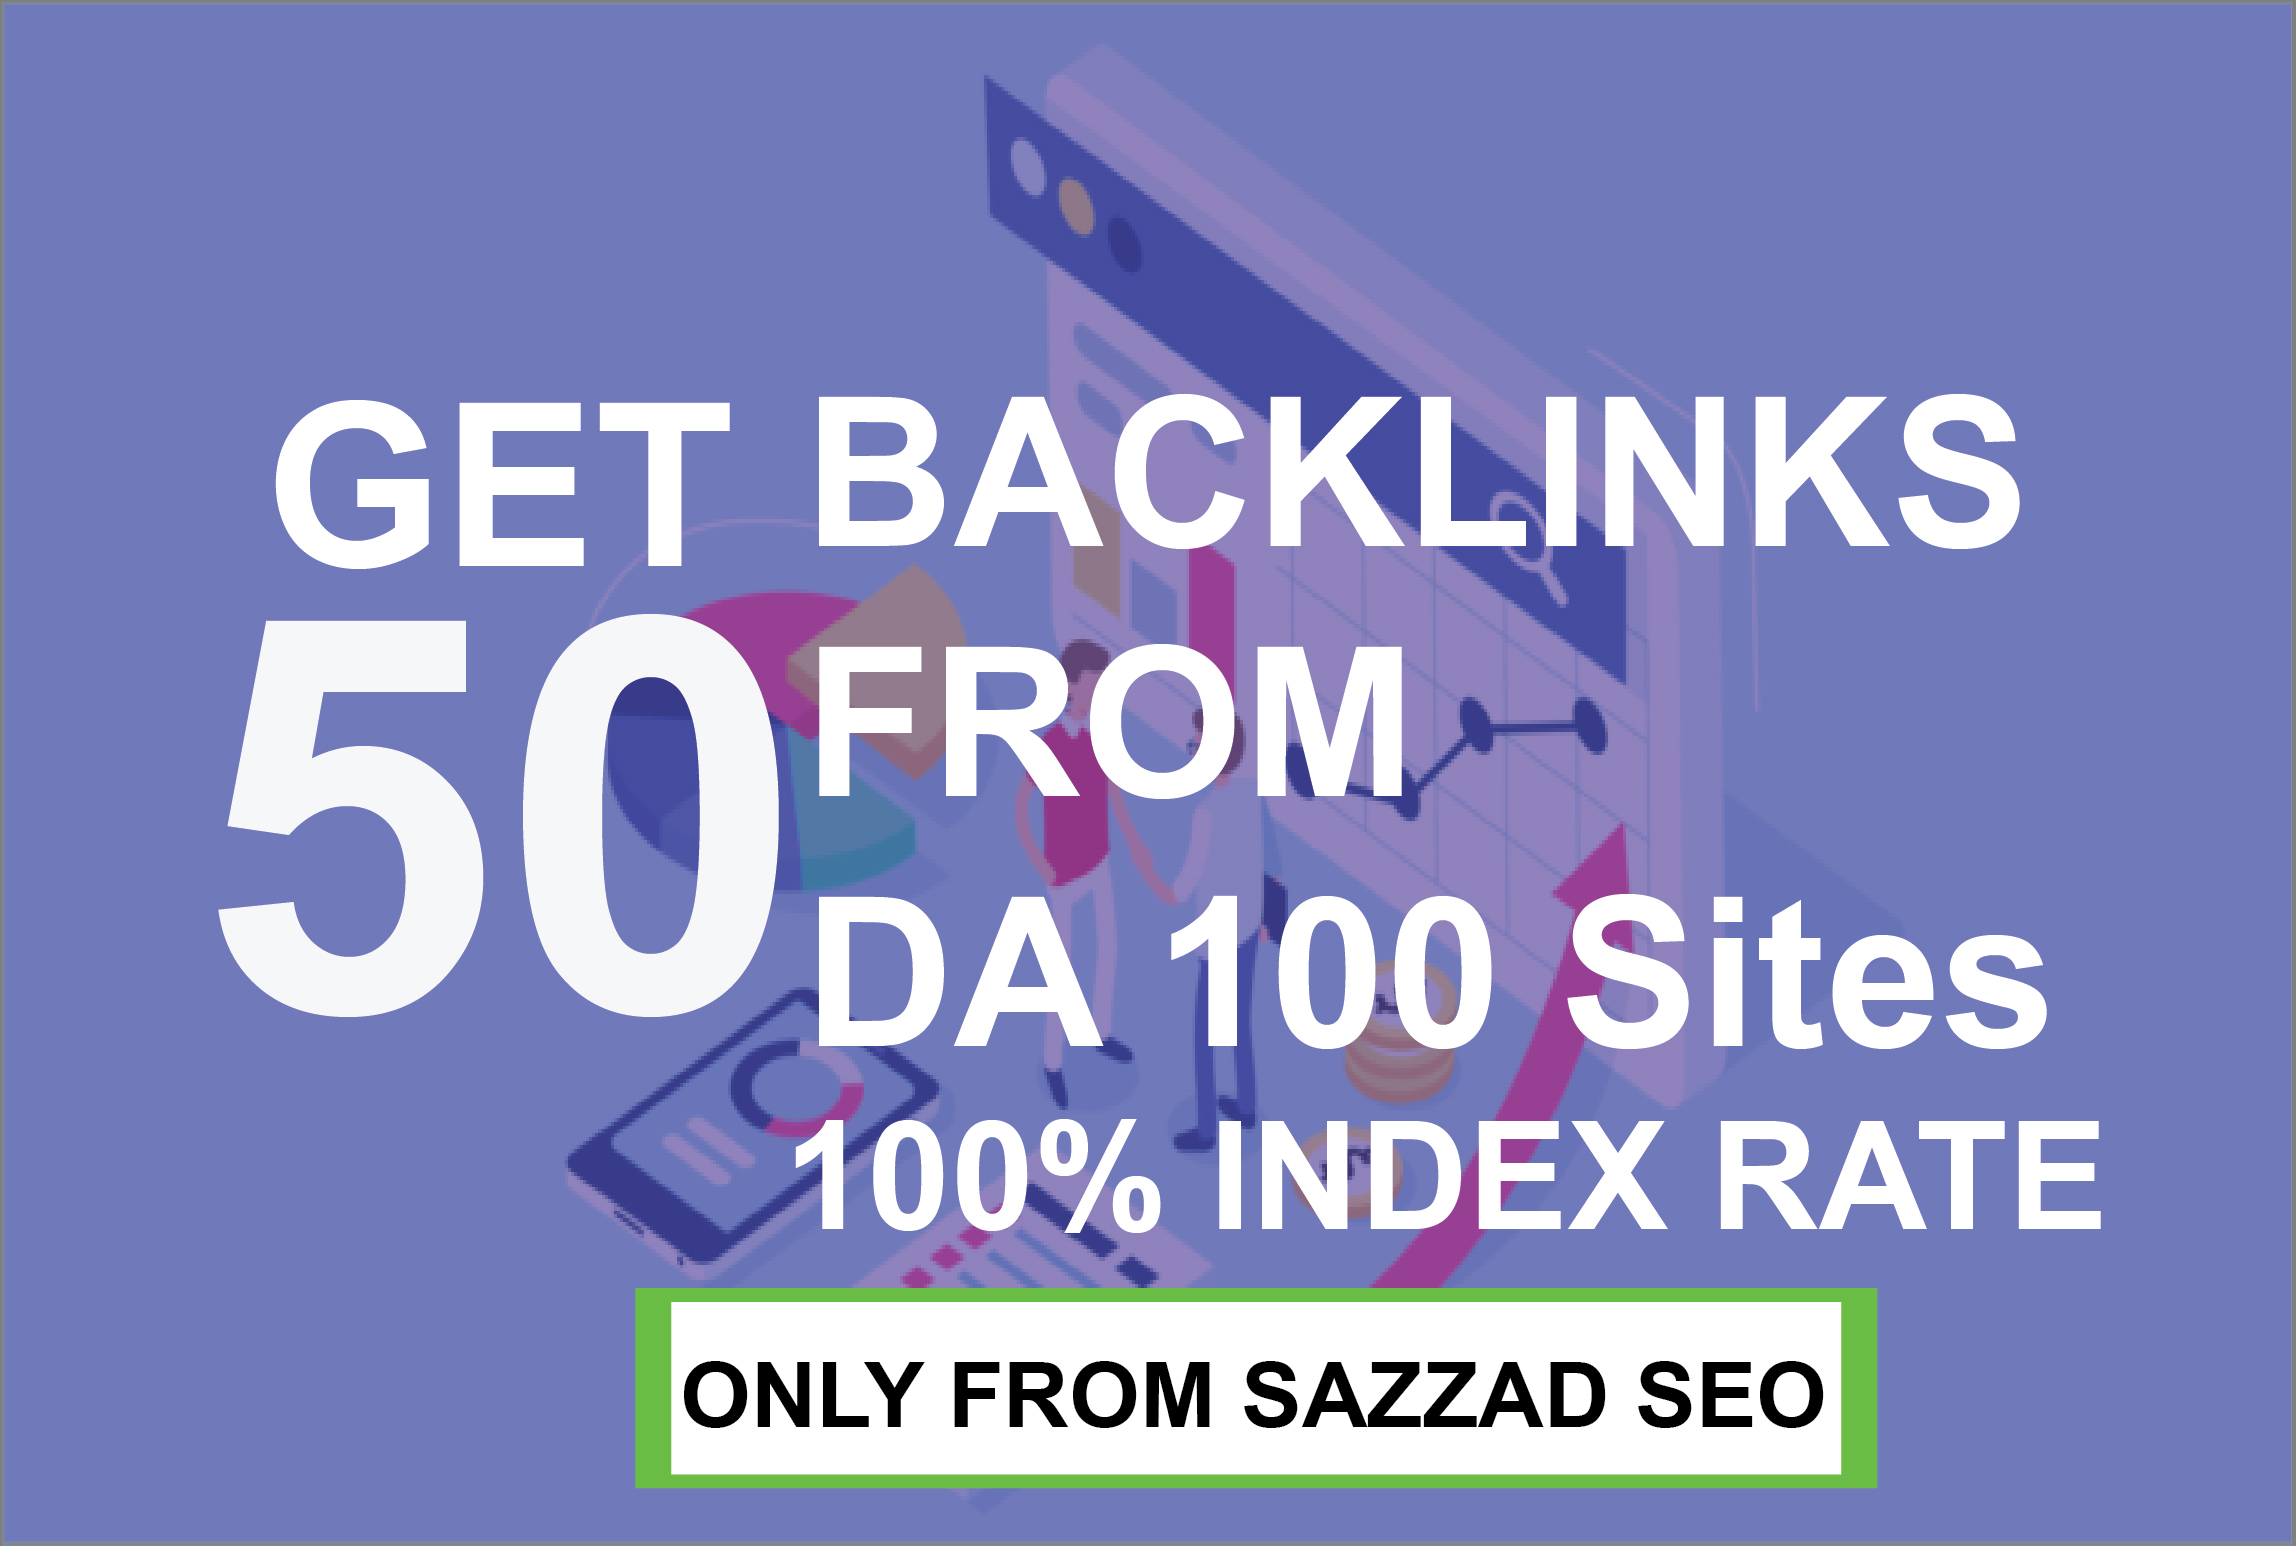 Get 100 Backlinks From DA 100 Sites Increase Domain Rating